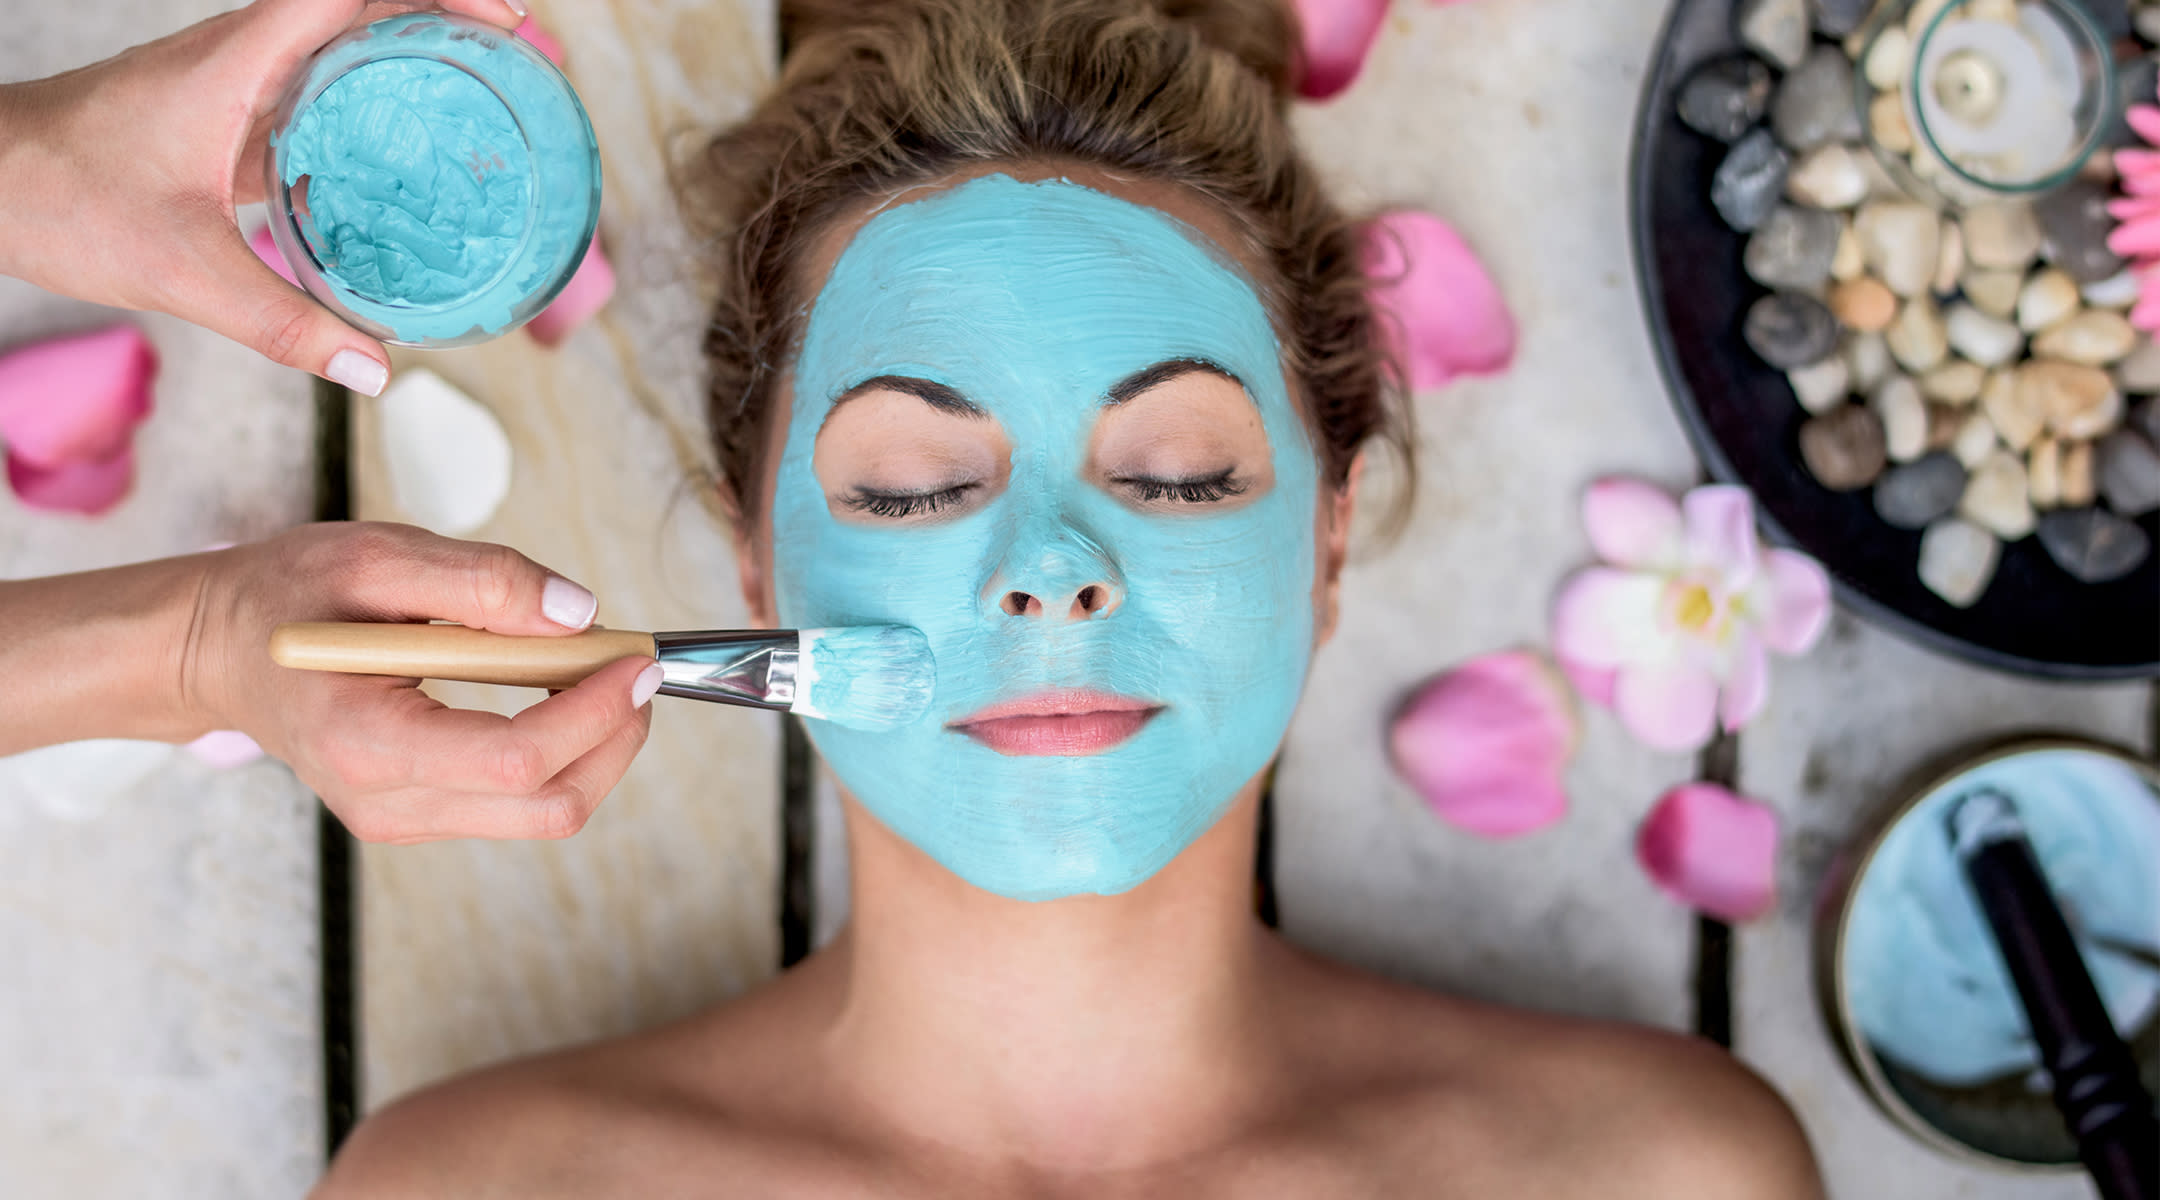 Woman getting a facial with a blue mask